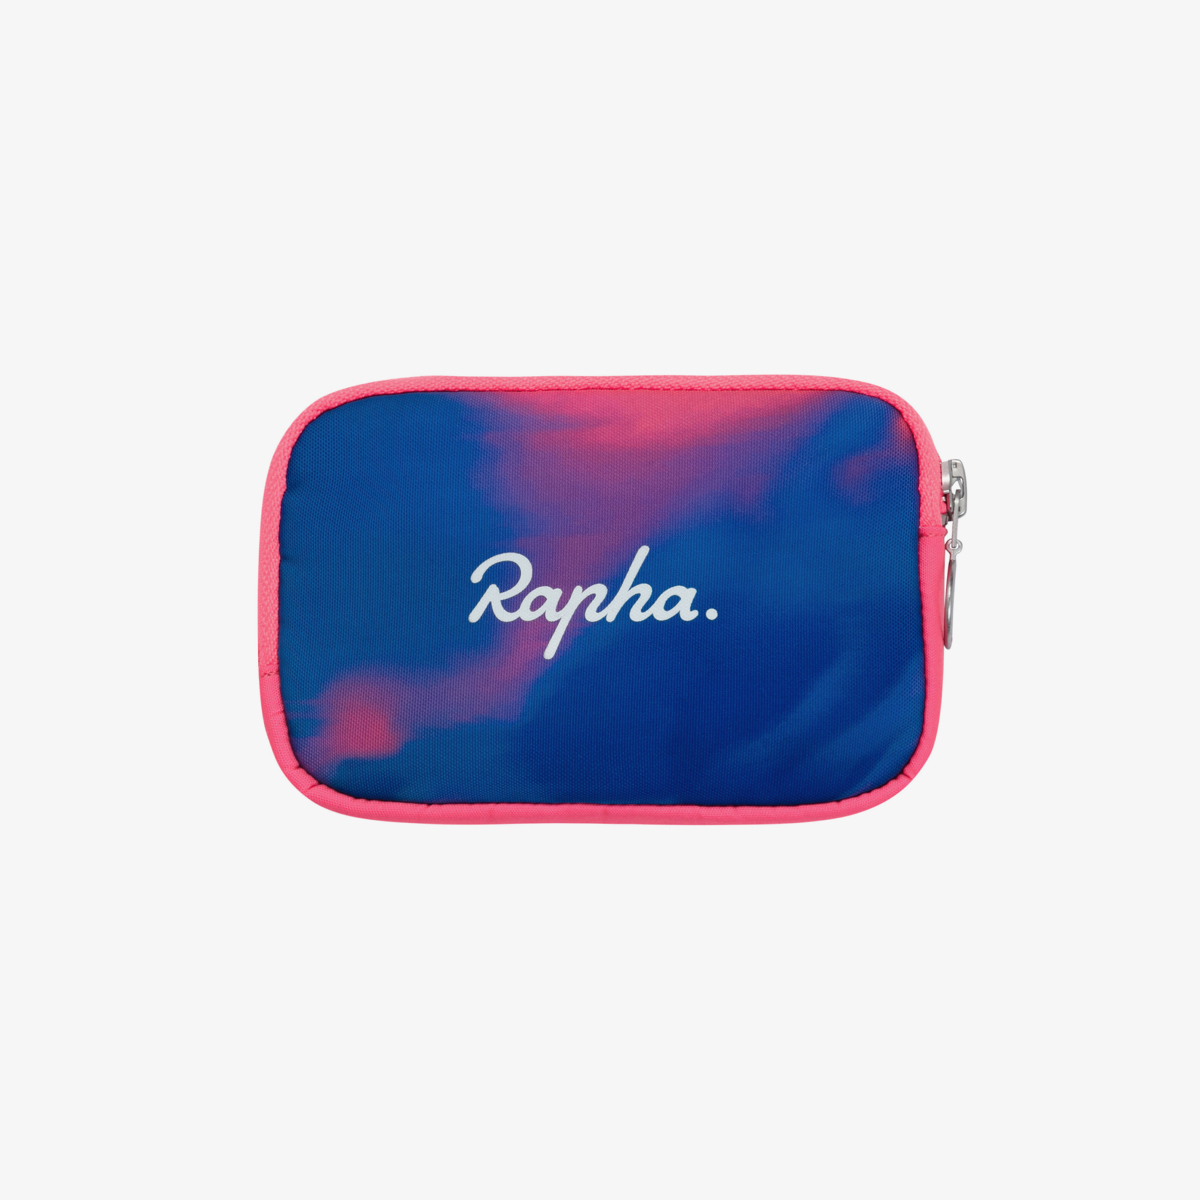 Rapha EF EDUCATION FIRST ESSENTIALS CASE